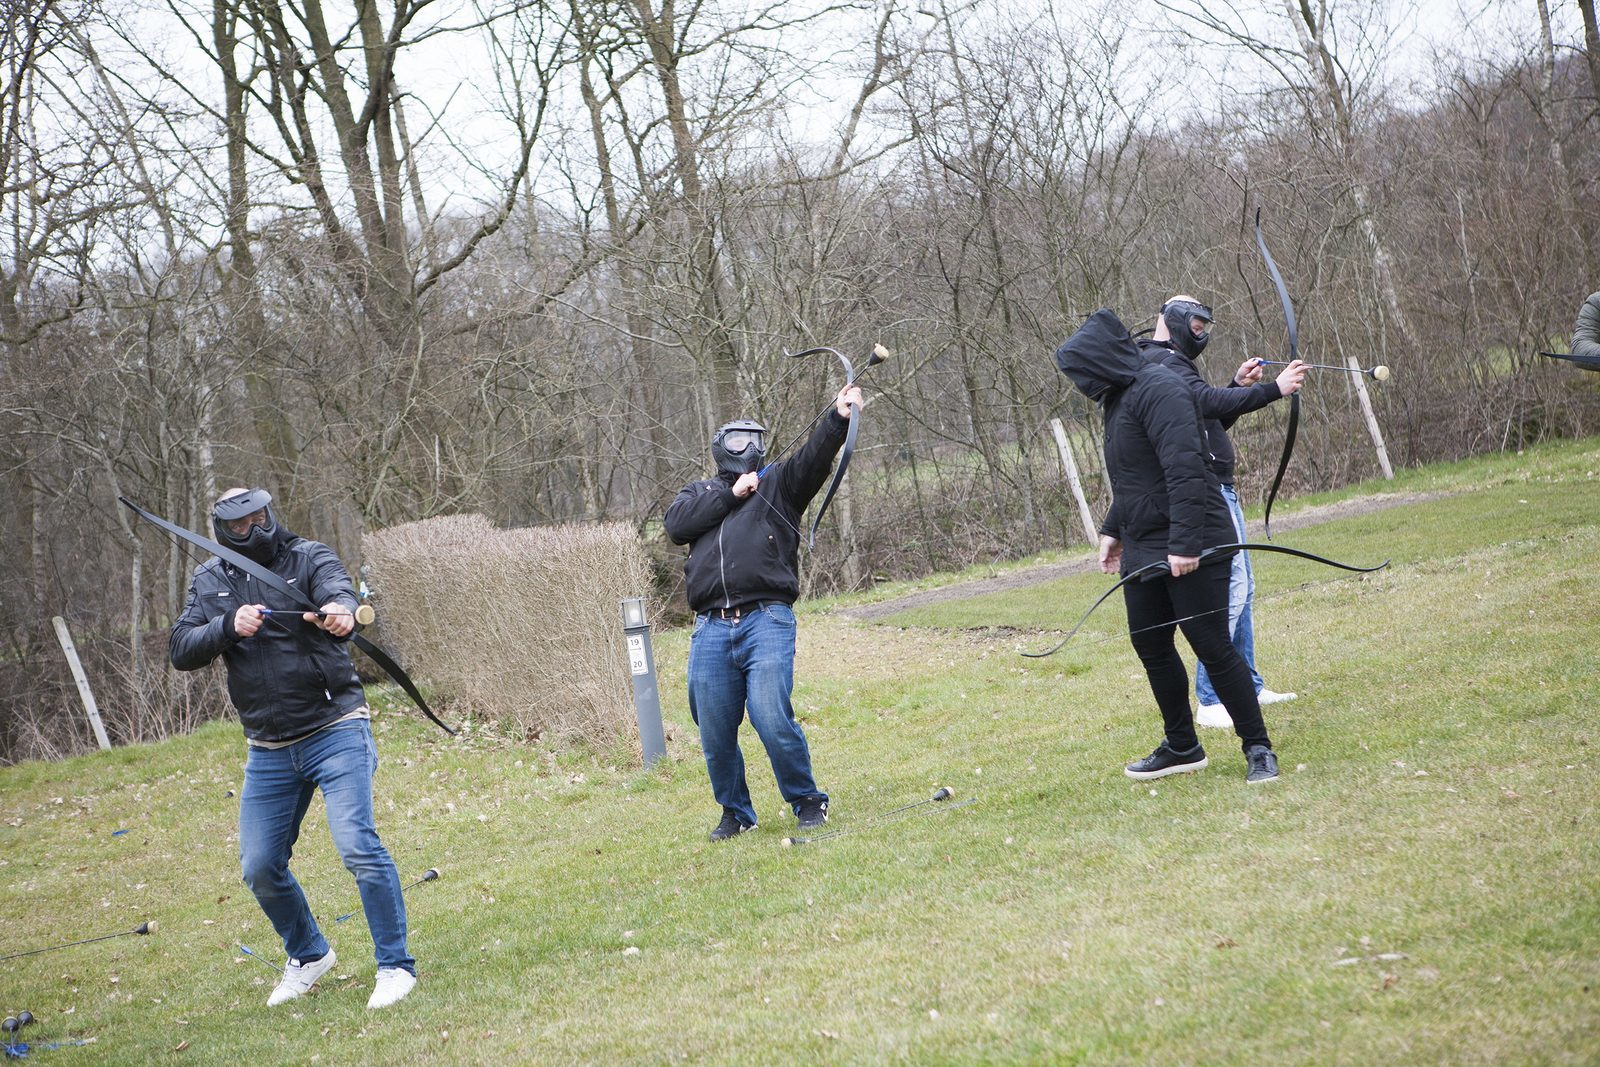 Archery Tag in Voorthuizen